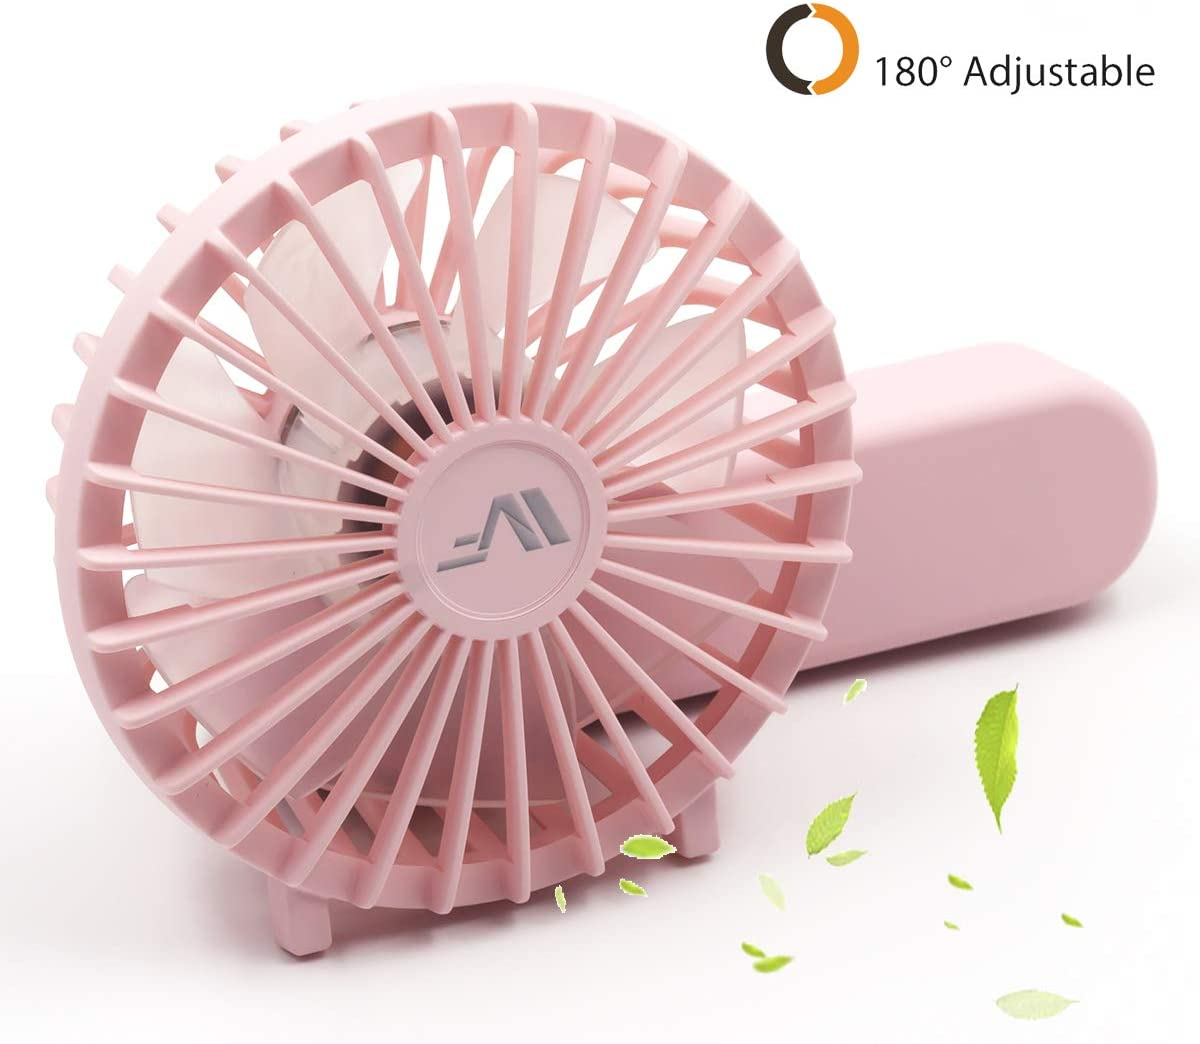 Portable Mini Fan Handheld Personal Fan Home Office Desk Speed Adjustable USB Rechargeable Eyelash Fan Air Cooler Outdoor Travel,Pink 1,China